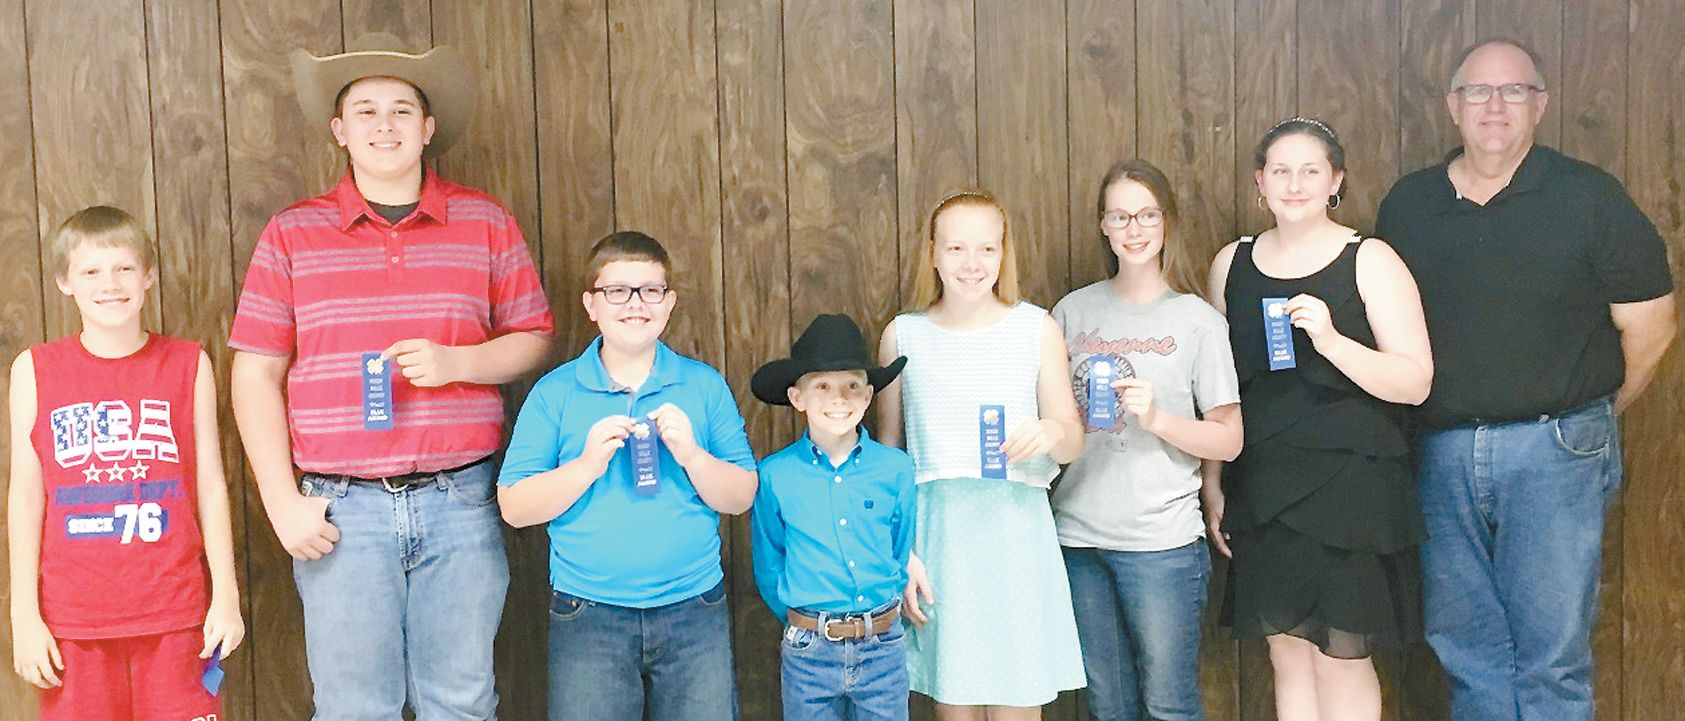 CONTEST...Cheyenne 4-H members participating in the Impressive Dress & Speech Contest were, Pictured left to right: Tack Hammer, Tyler York, Keagan Lamb, Nate Hickey, Emma Hickey, Callee Hammer, Jaylynn Lamb and Dan Cook.